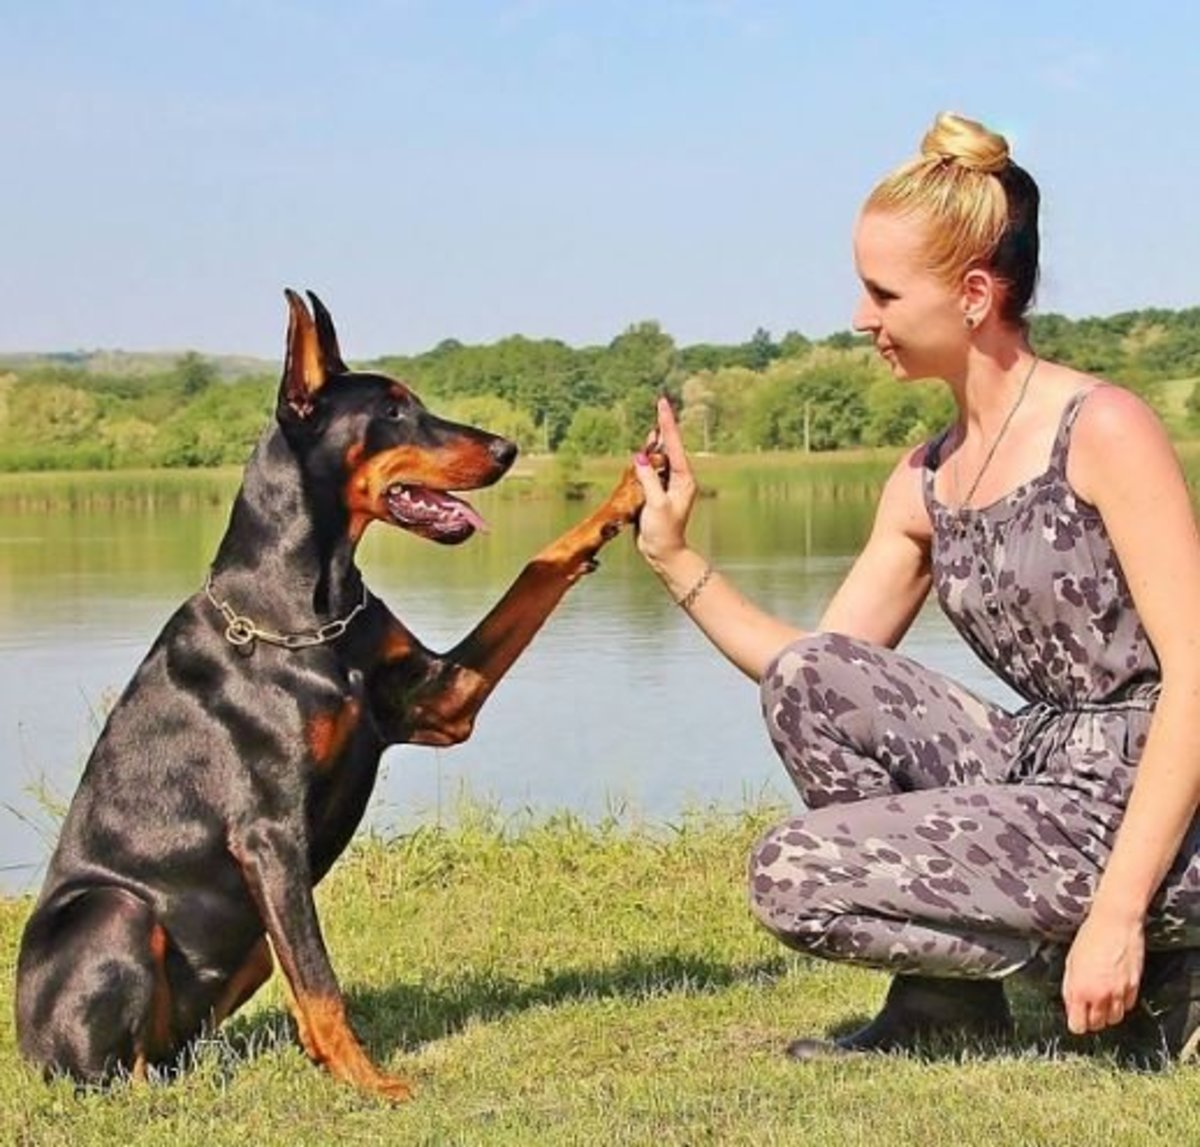 dog-behavior-exercises-for-building-confidence-in-insecure-dogs